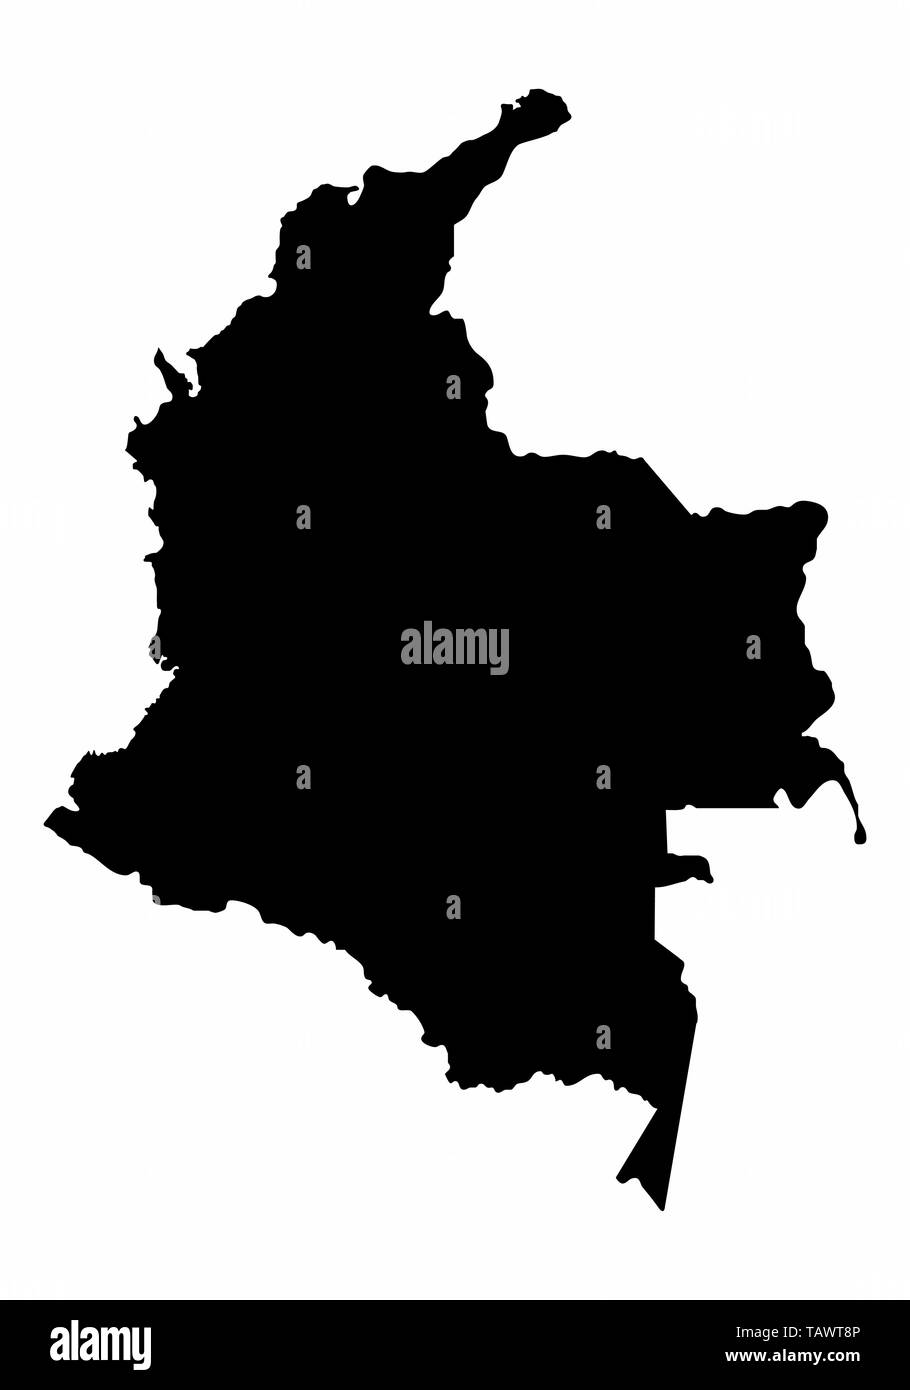 Colombia map dark silhouette isolated on white background - Stock Vector